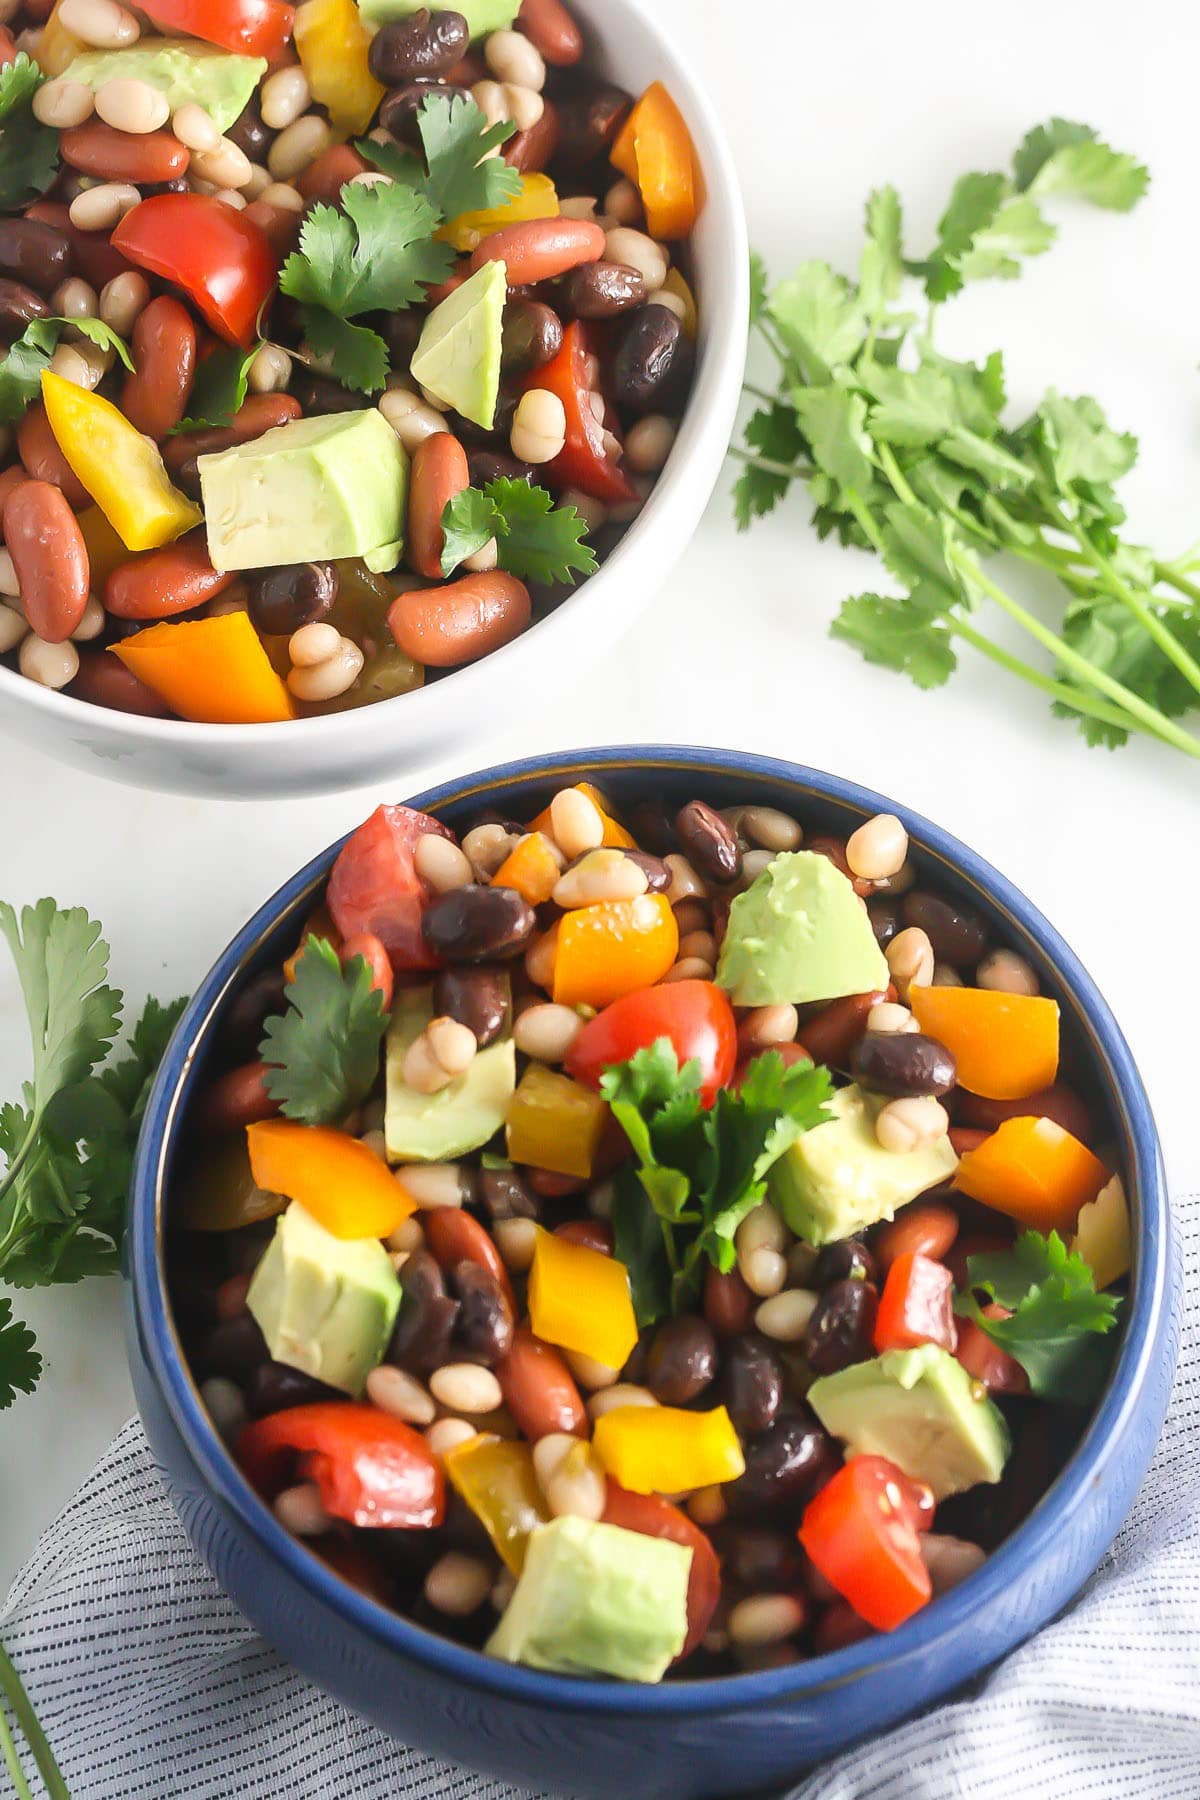 Mexican Bean Salad Vegan Gluten Free Grain All Veggie Vegetarian This Is Packed With Plant Based Protein And Fiber Naturally